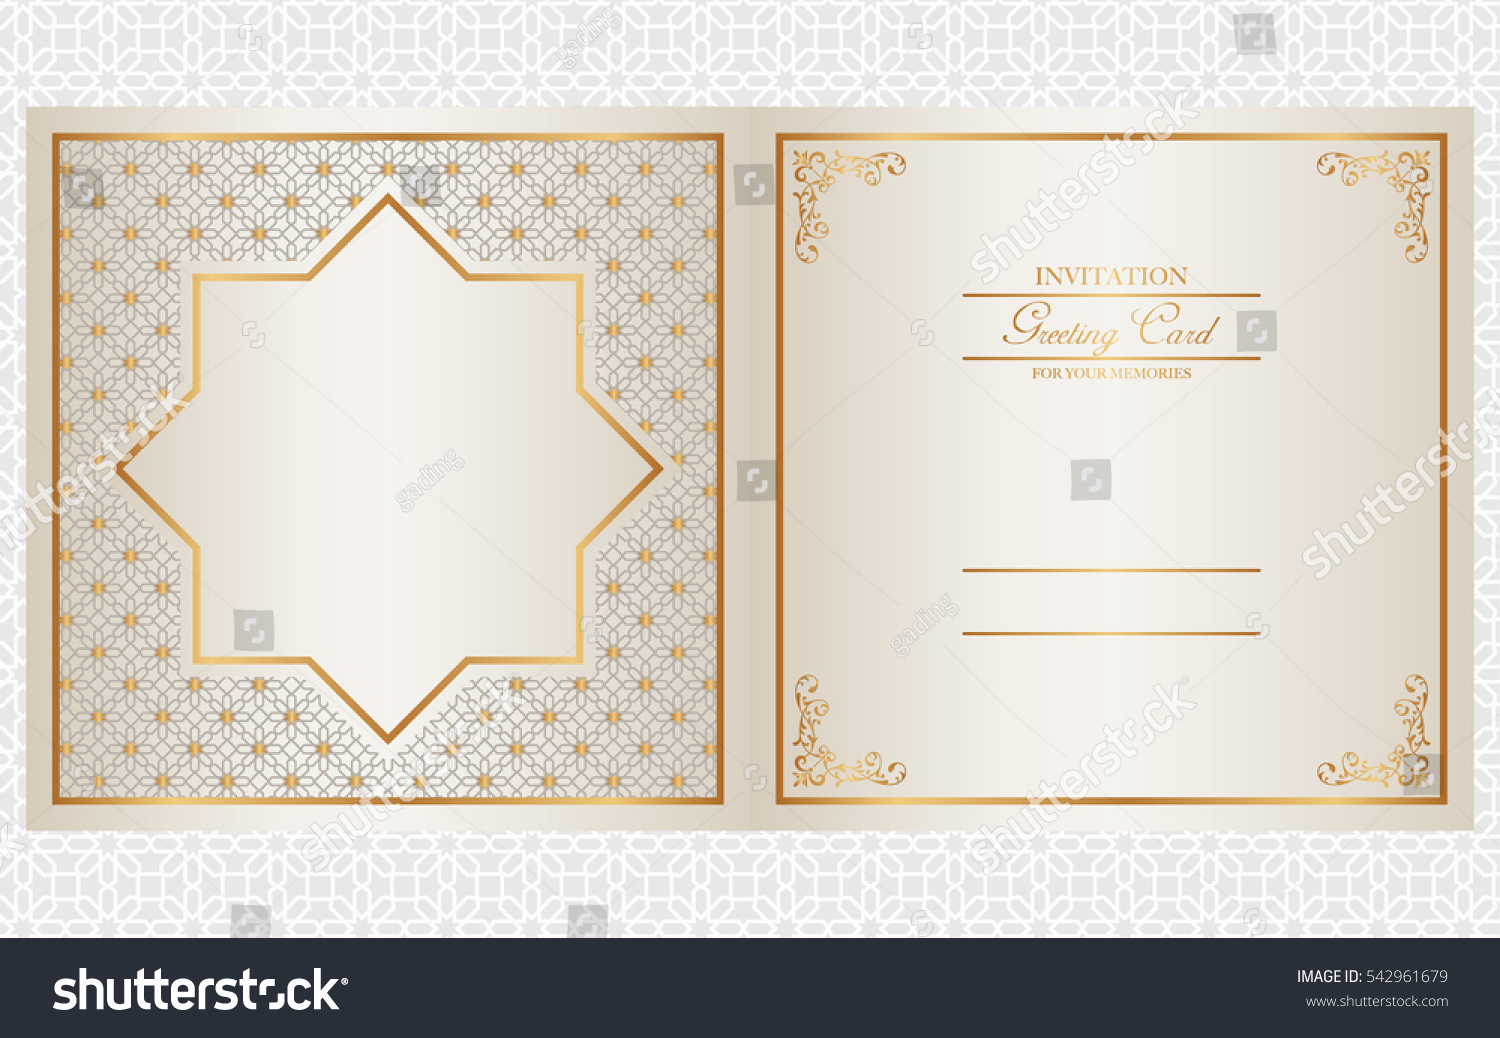 Invitation card design indian arabic muslim stock vector 542961679 invitation card design indian arabic and muslim theme stopboris Images